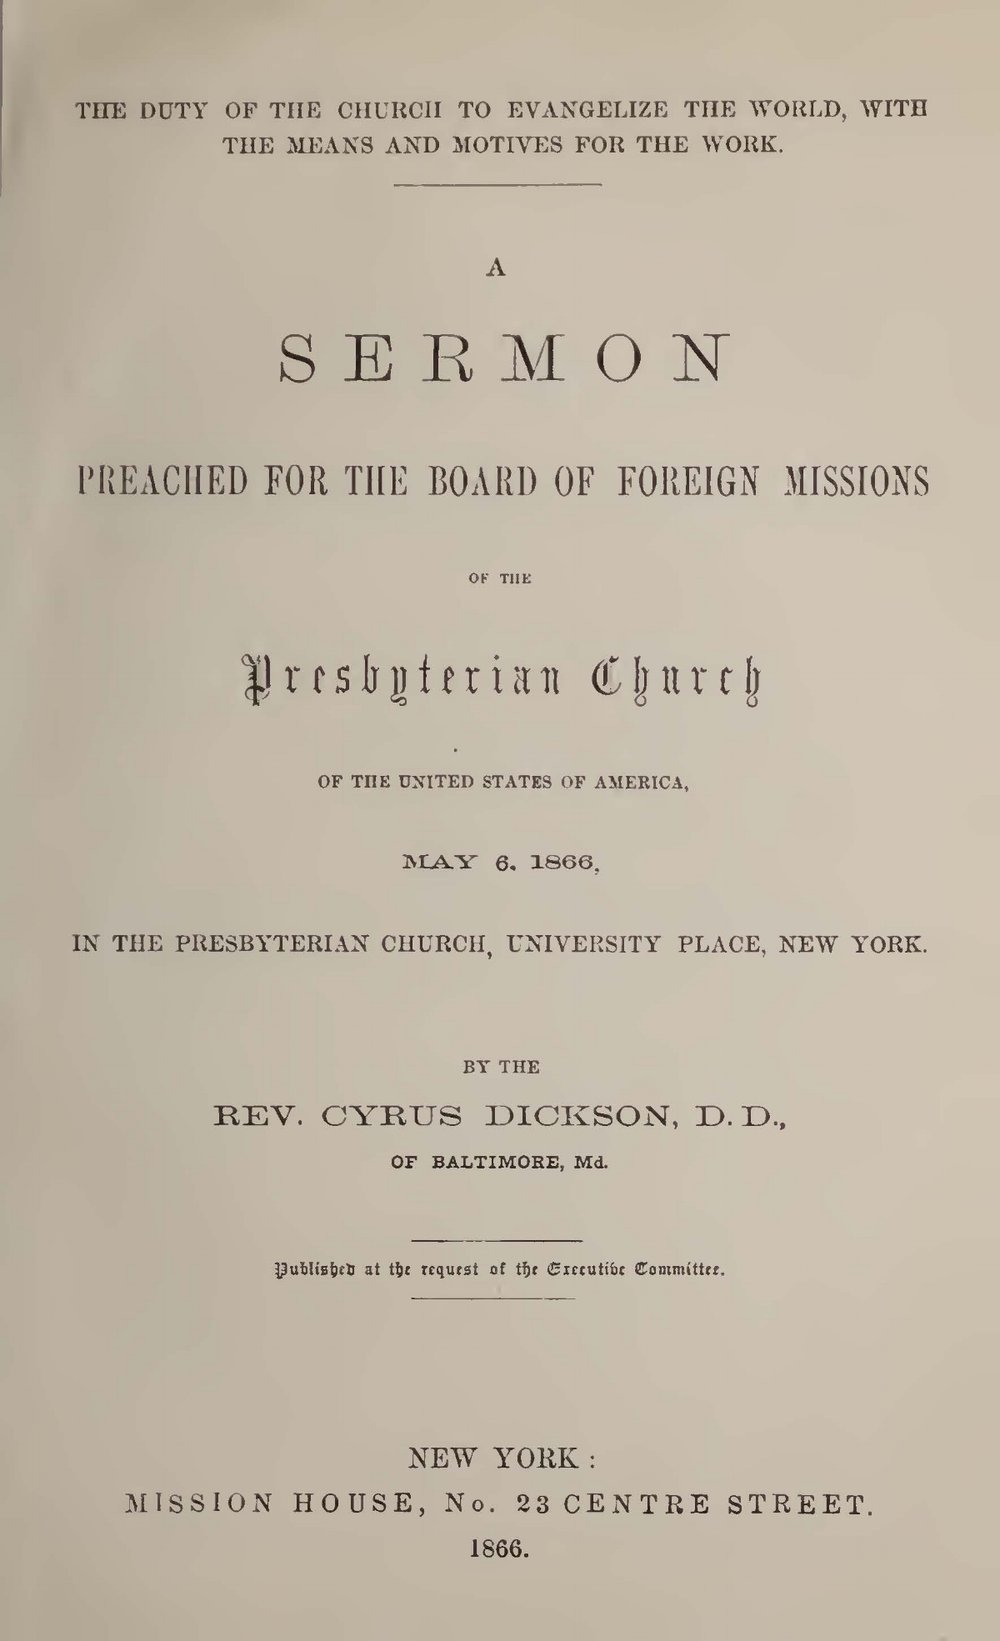 Dickson, Cyrus, Duty of the Church to Evangelize the World Title Page.jpg